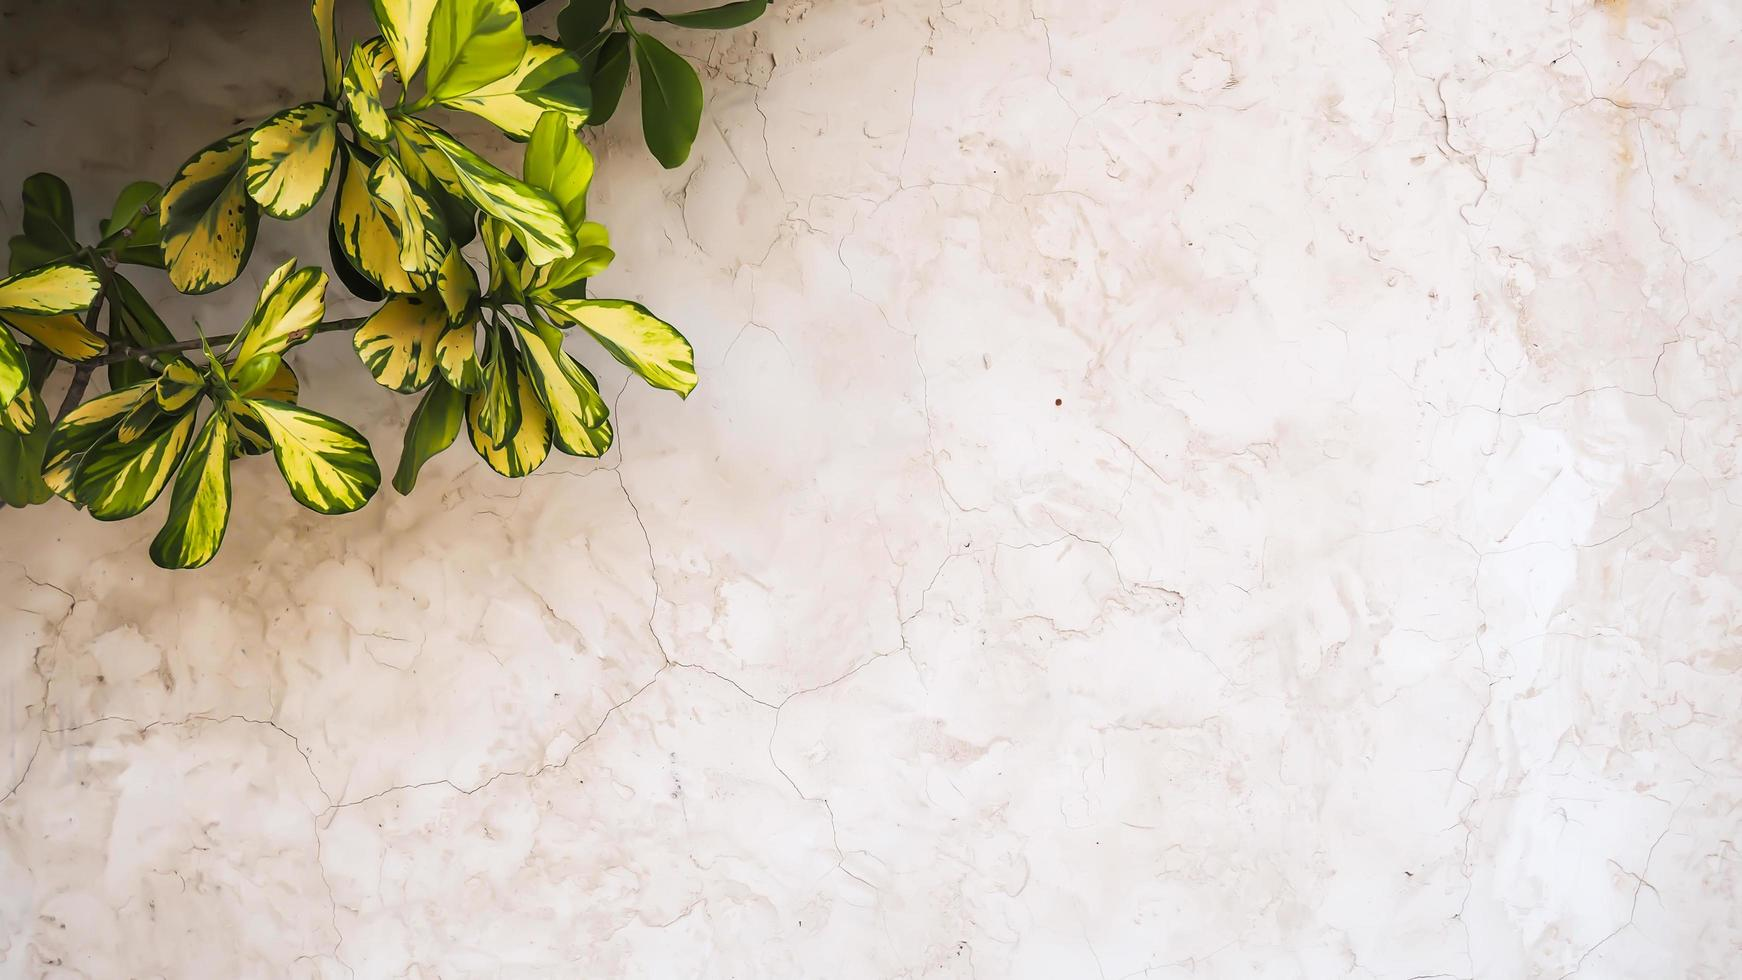 House plant on marble tile photo